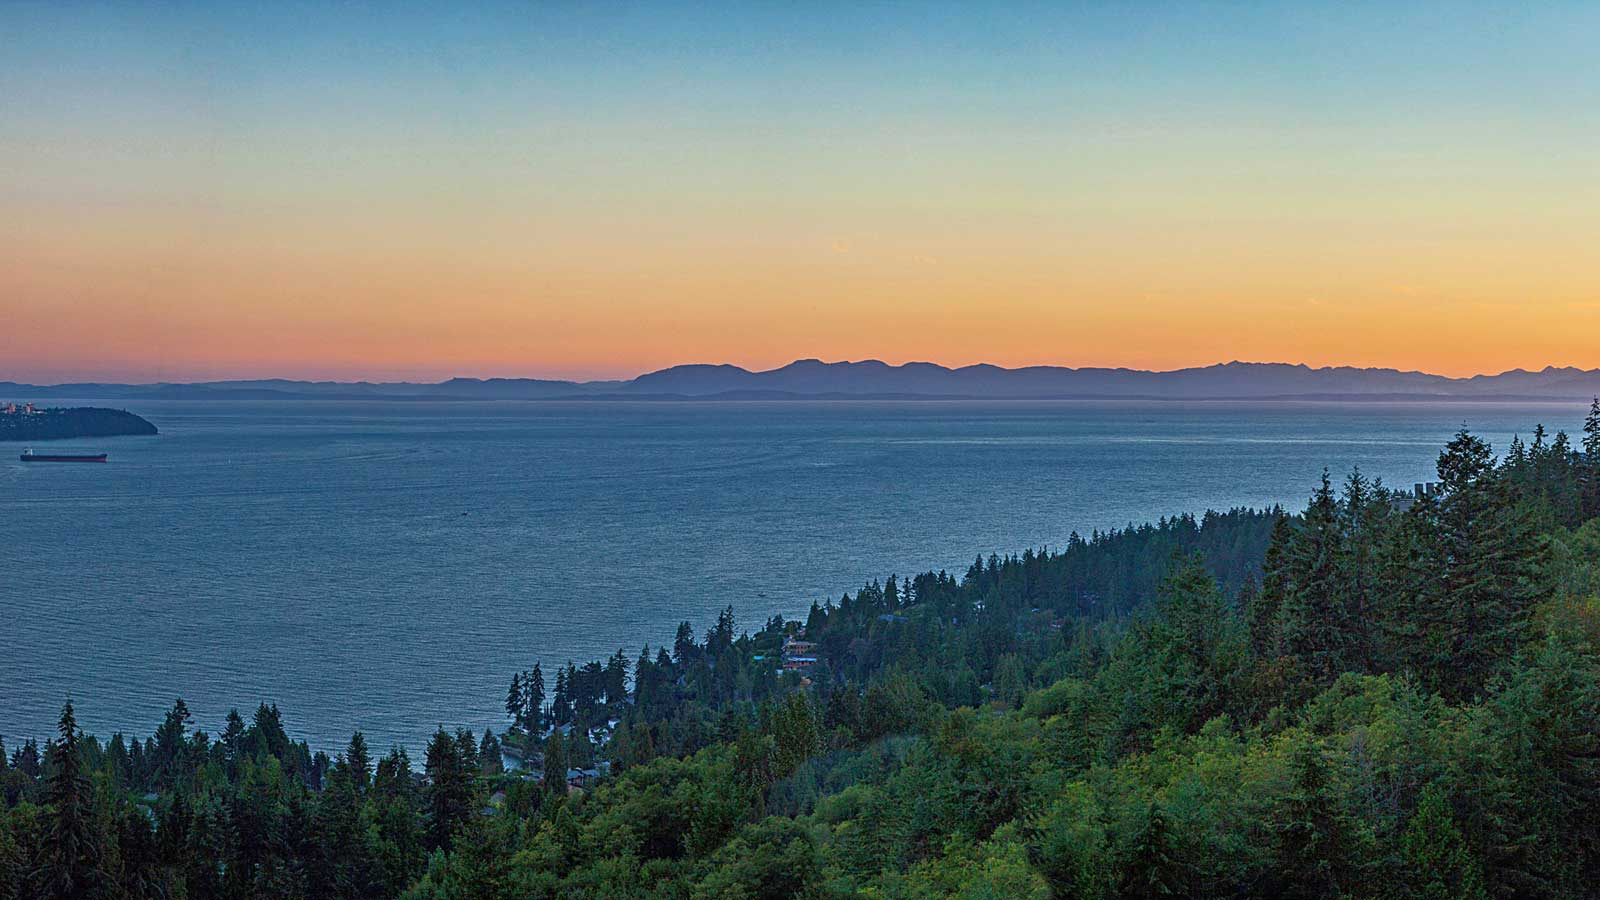 View over the Gulf of Georgia from the Courtenay luxury condominiums in West Vancouver.